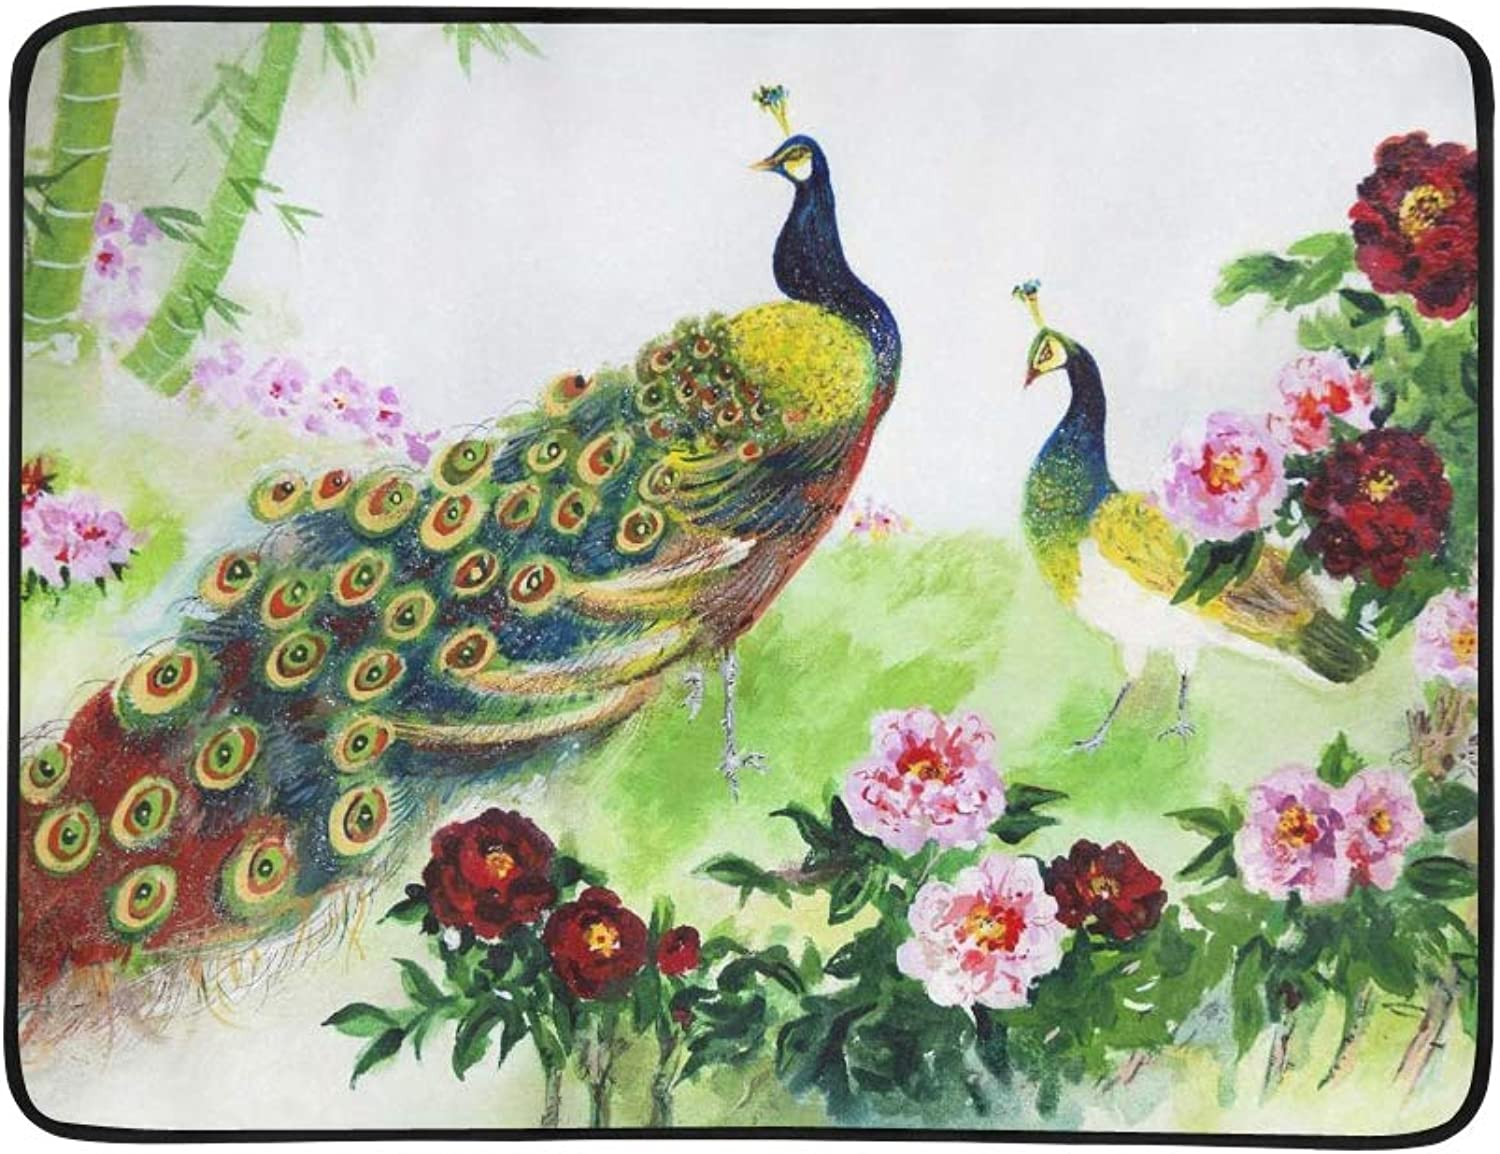 A Pair of Peacocks On A Cherry Tree Branch Pattern Portable and Foldable Blanket Mat 60x78 Inch Handy Mat for Camping Picnic Beach Indoor Outdoor Travel